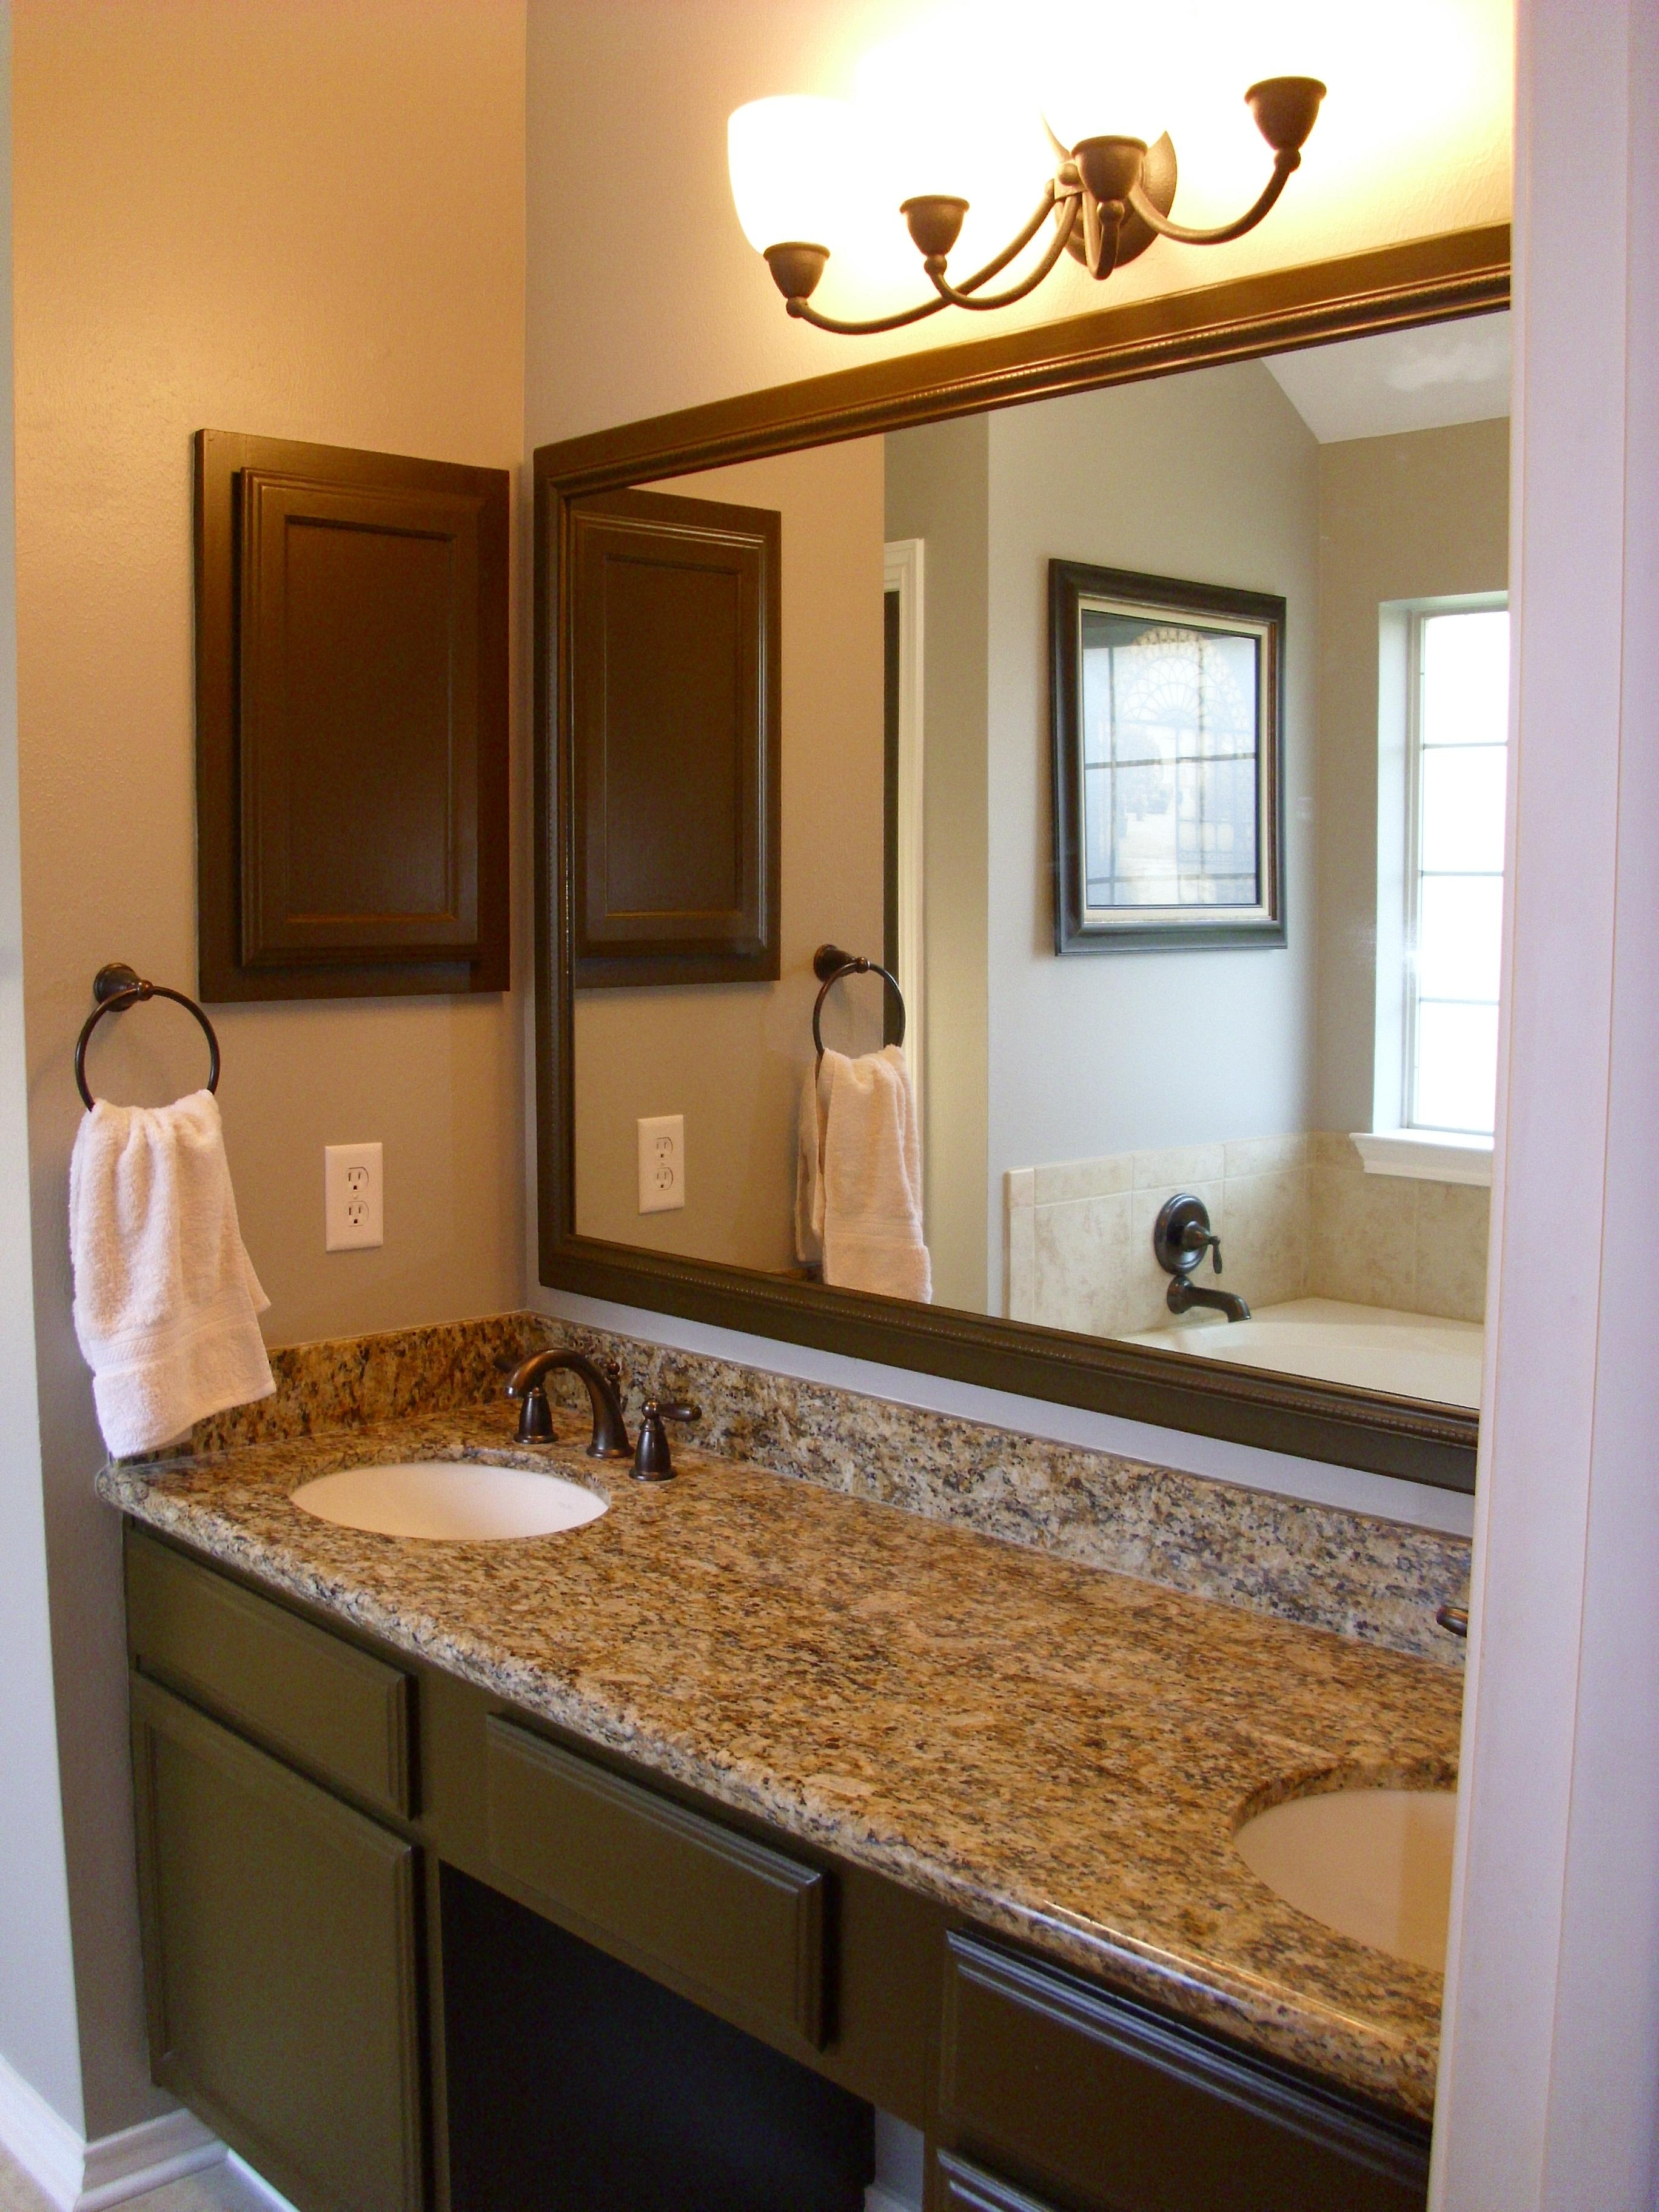 Double Vanity Mirrors For Bathroom Collection With Picture With Double Vanity Bathroom Mirrors (View 15 of 20)